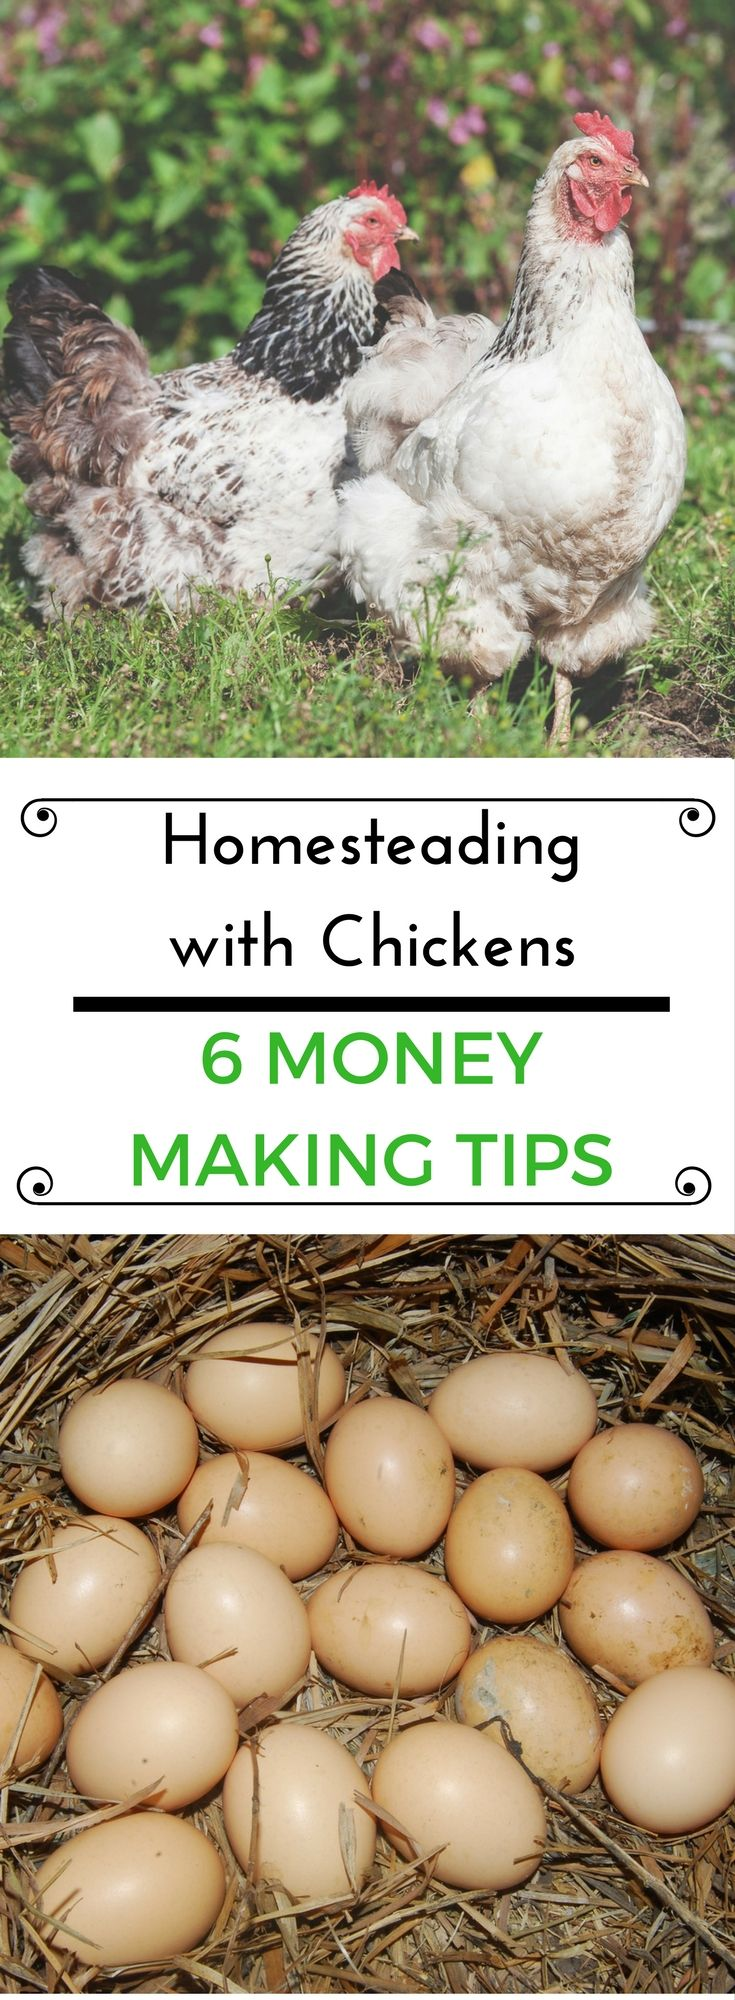 Want to make money homesteading with your chickens? You can make money with your chickens with these 5 different tips.